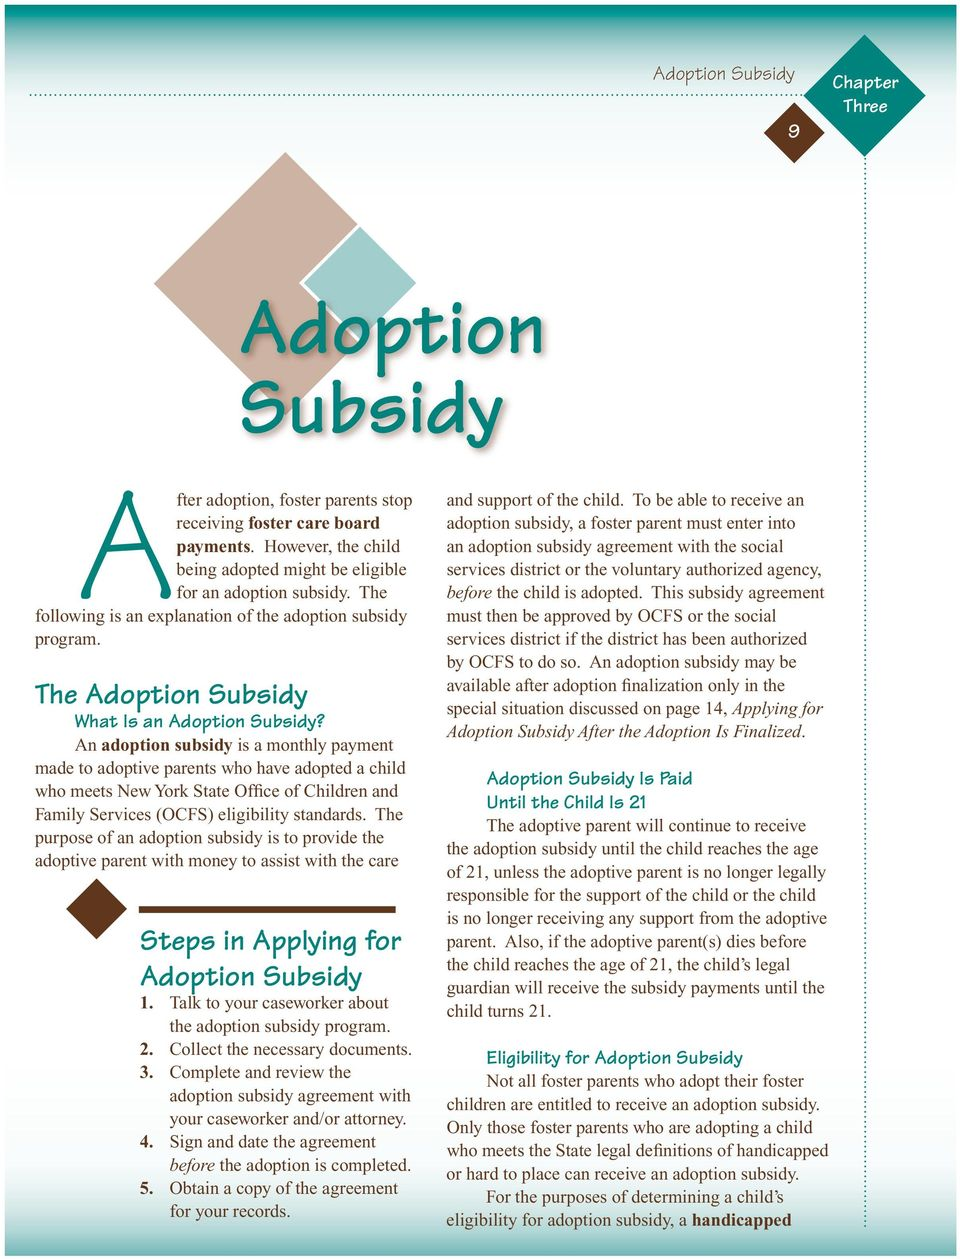 An adoption subsidy is a monthly payment made to adoptive parents who have adopted a child who meets New York State Office of Children and Family Services (OCFS) eligibility standards.